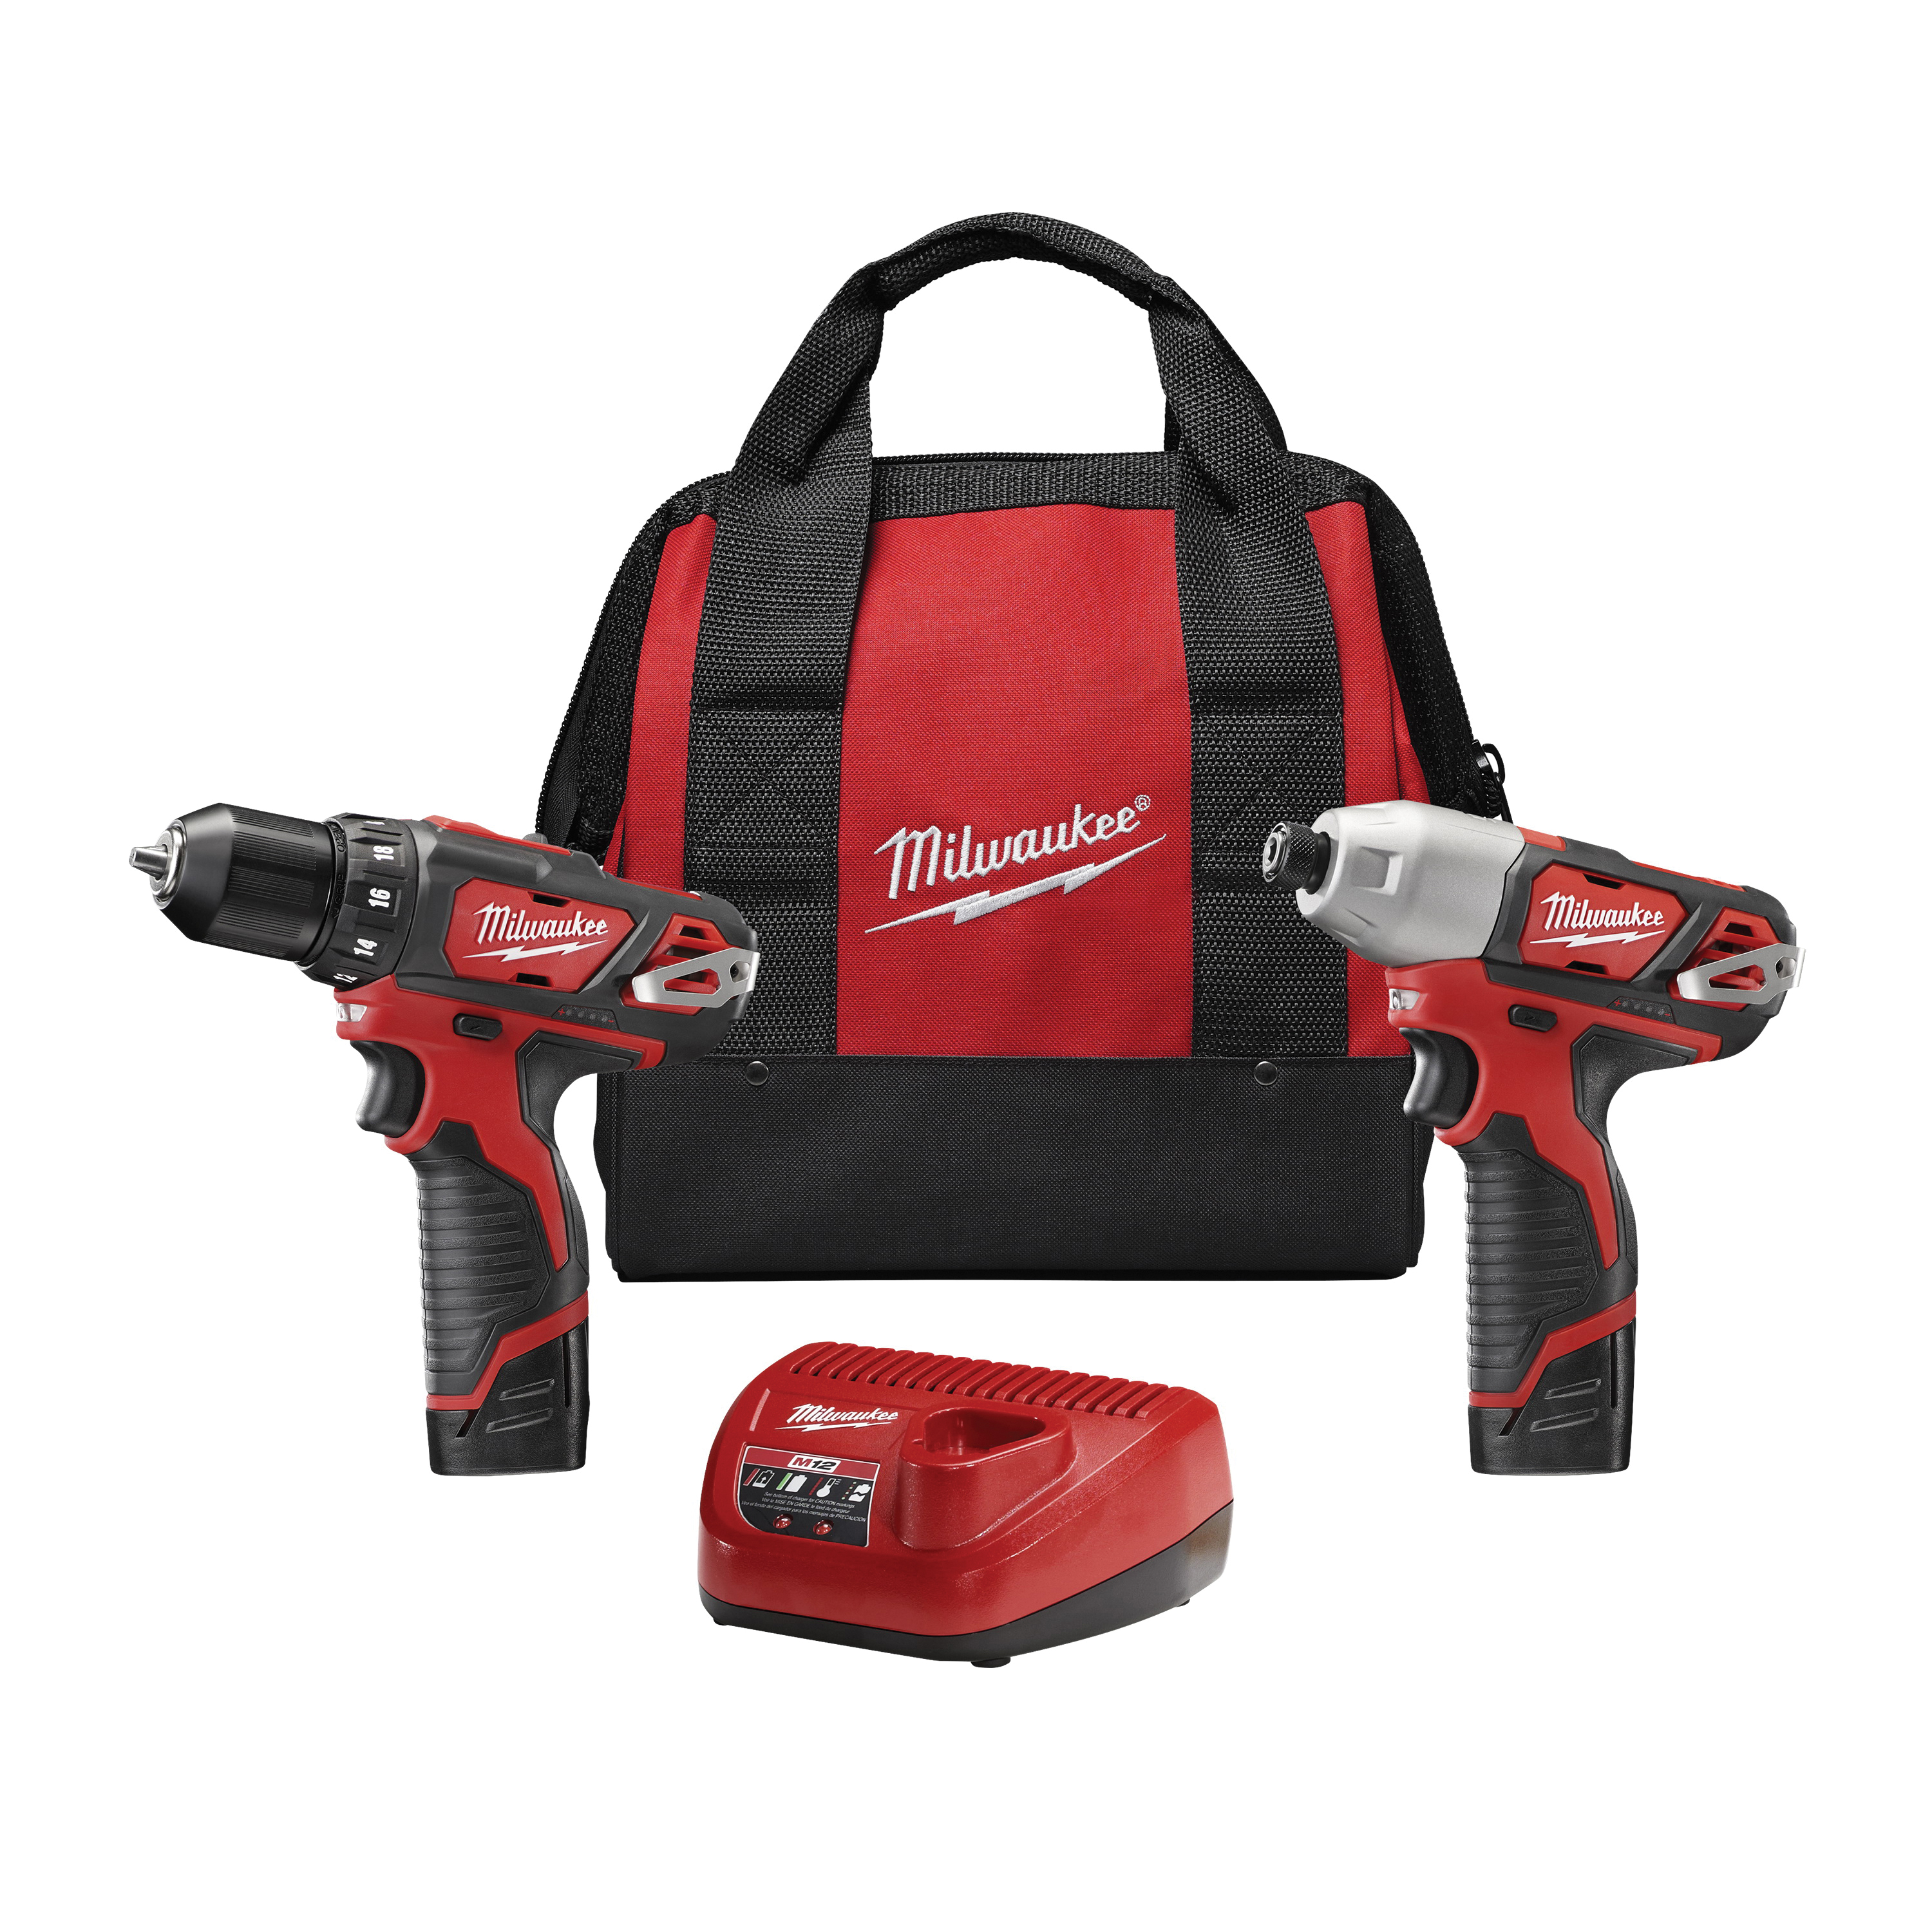 Picture of Milwaukee 2494-22 Two-Tool Combo Kit, Battery Included: Yes